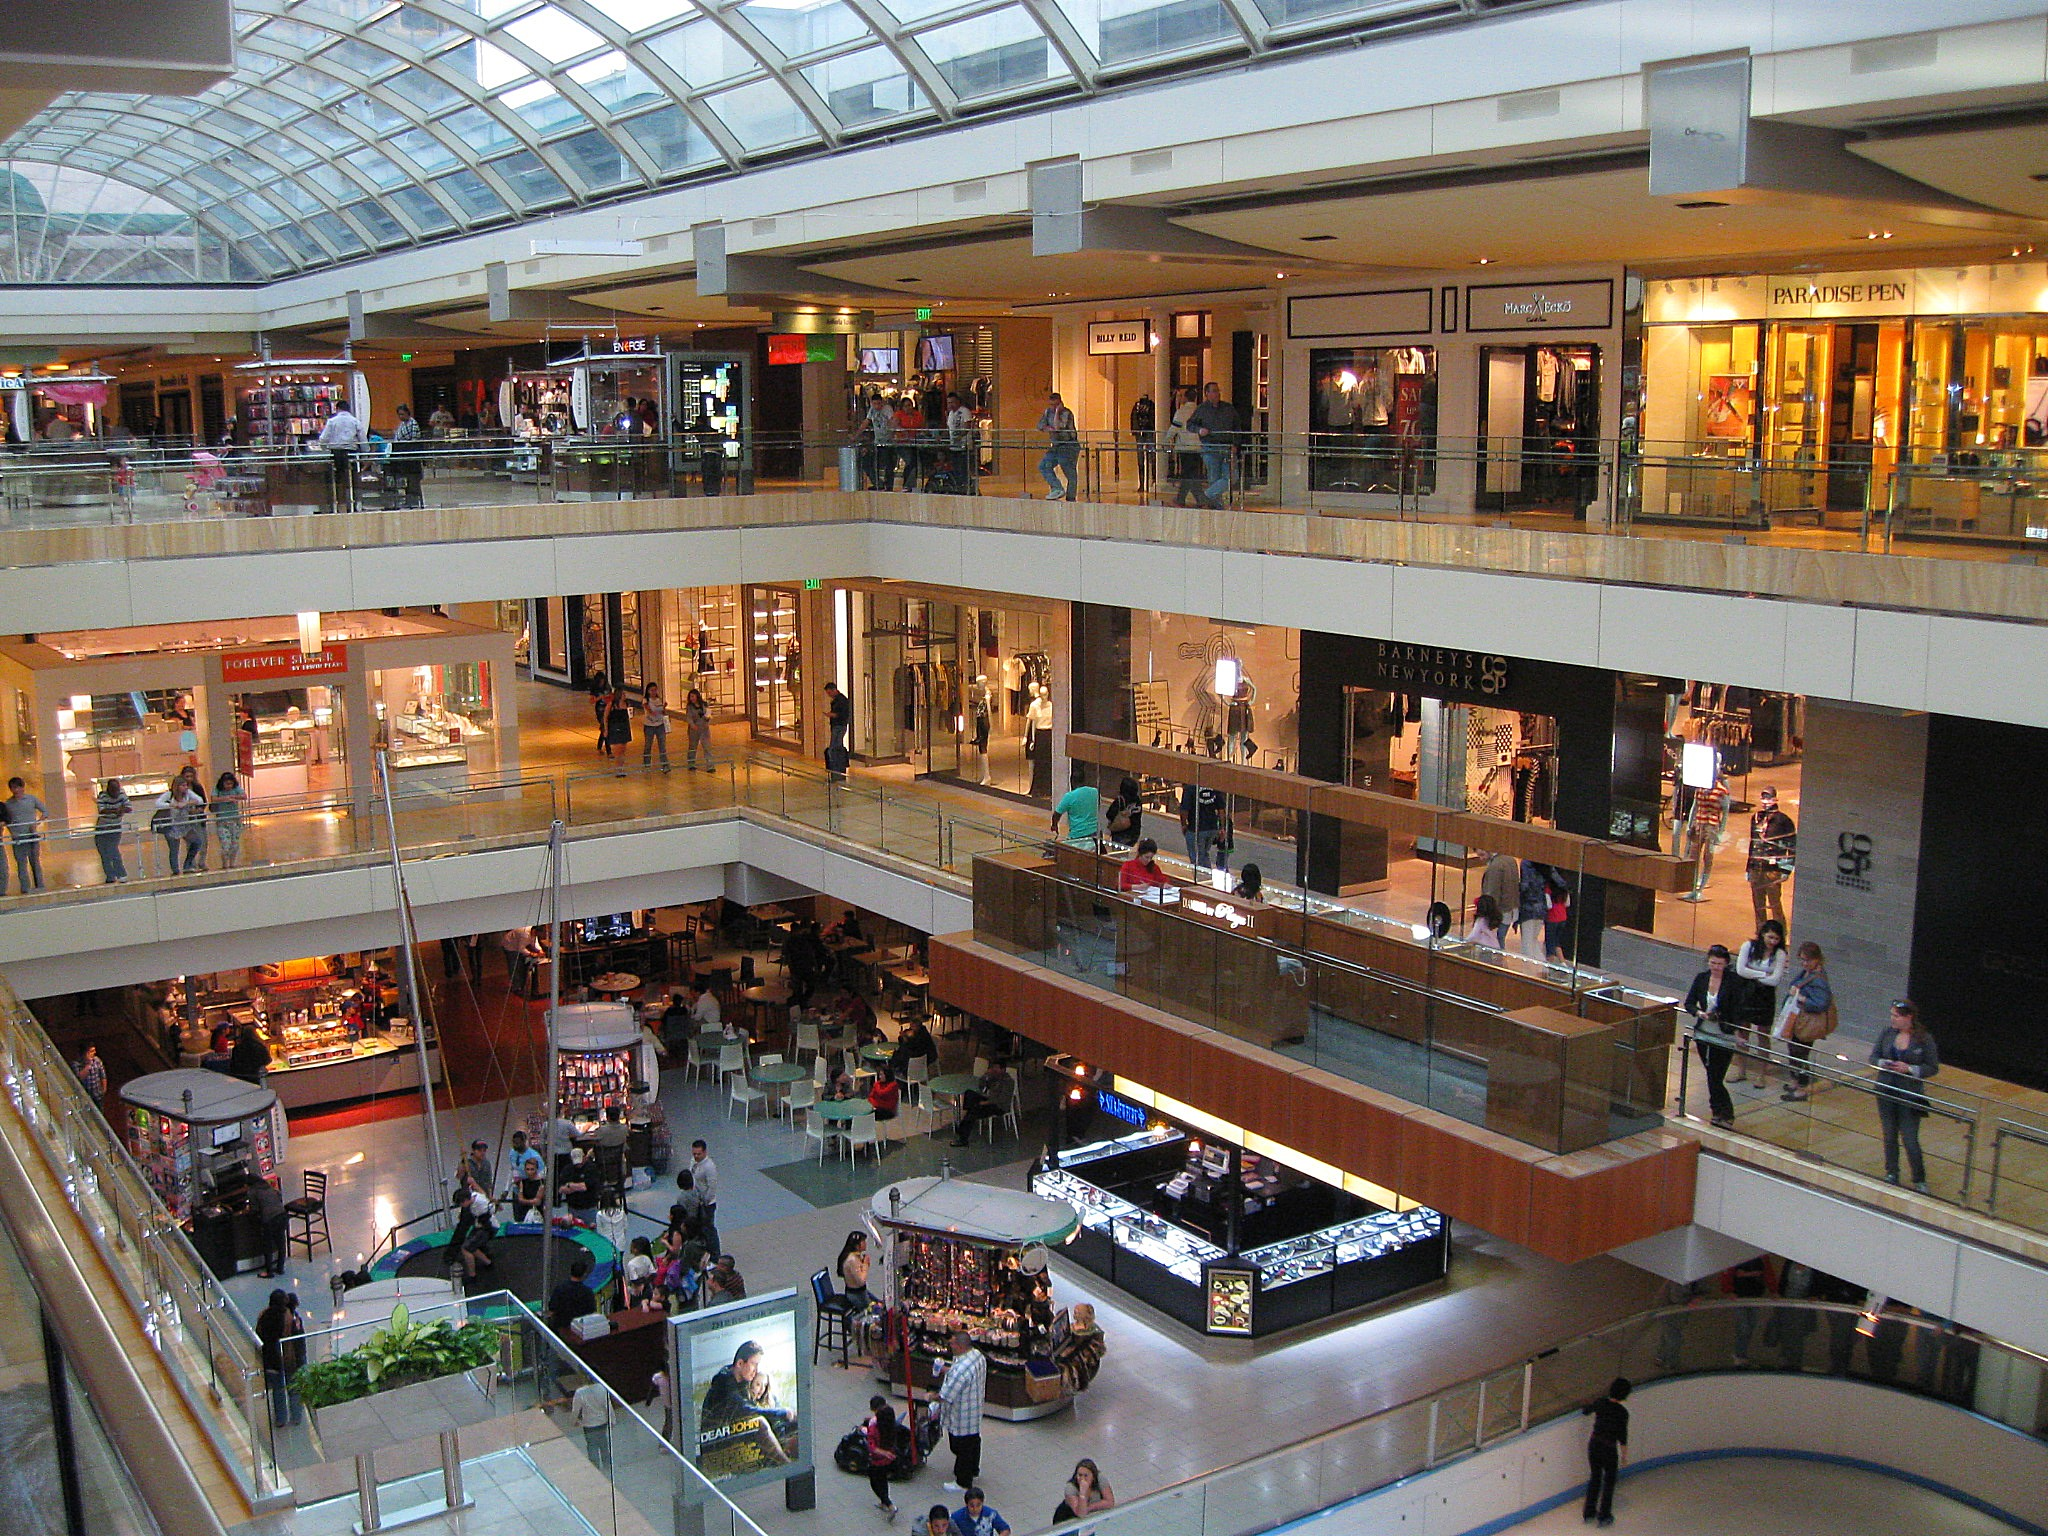 The Galleria - Top Place to Shop in Houston